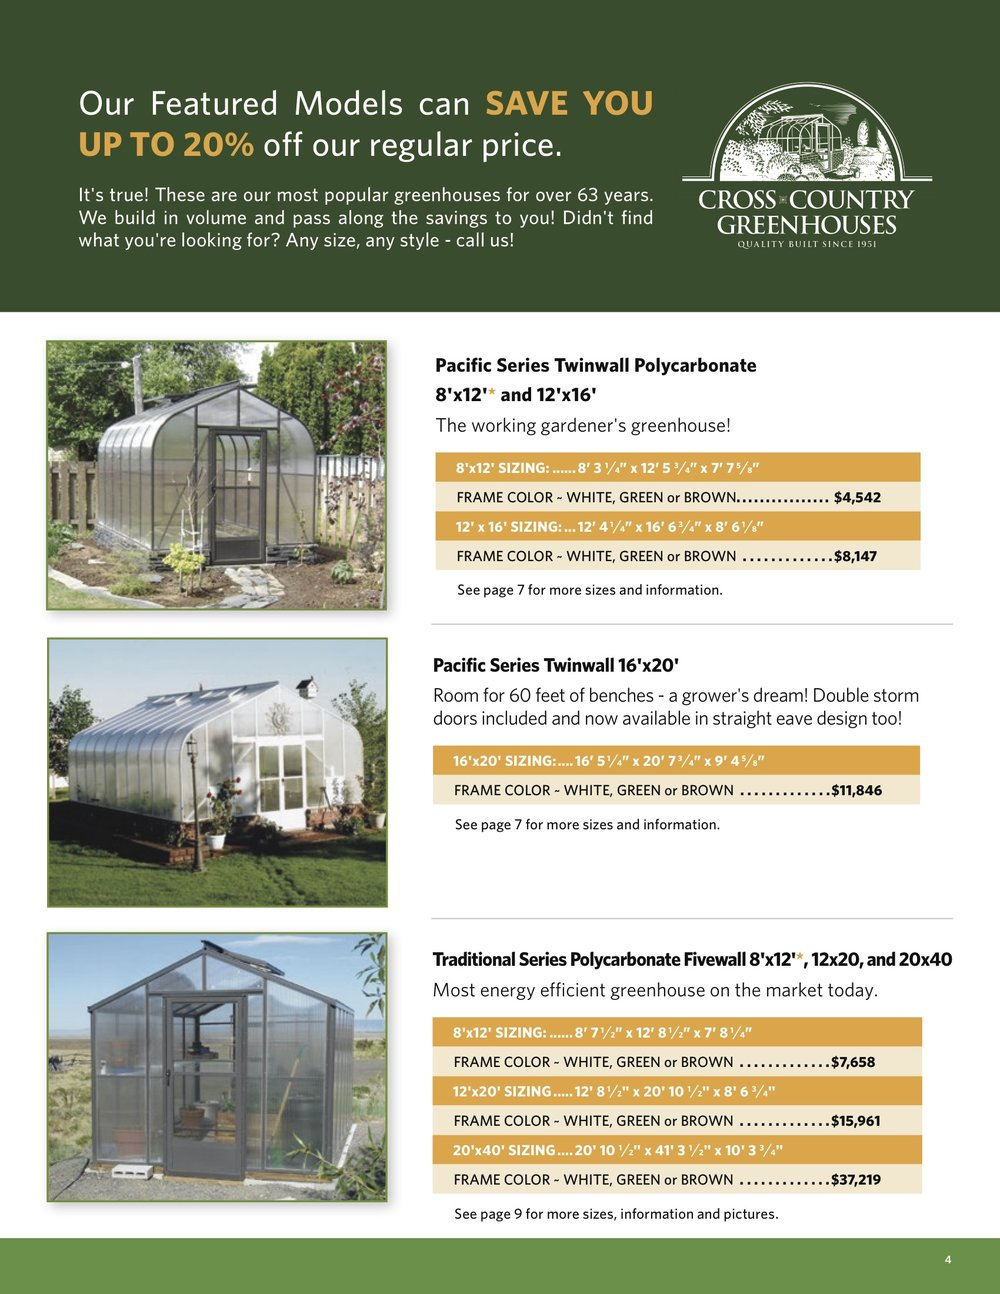 111552_Wisconsin Greenhouse Company_National Catalog (4) (dragged) 3.jpeg